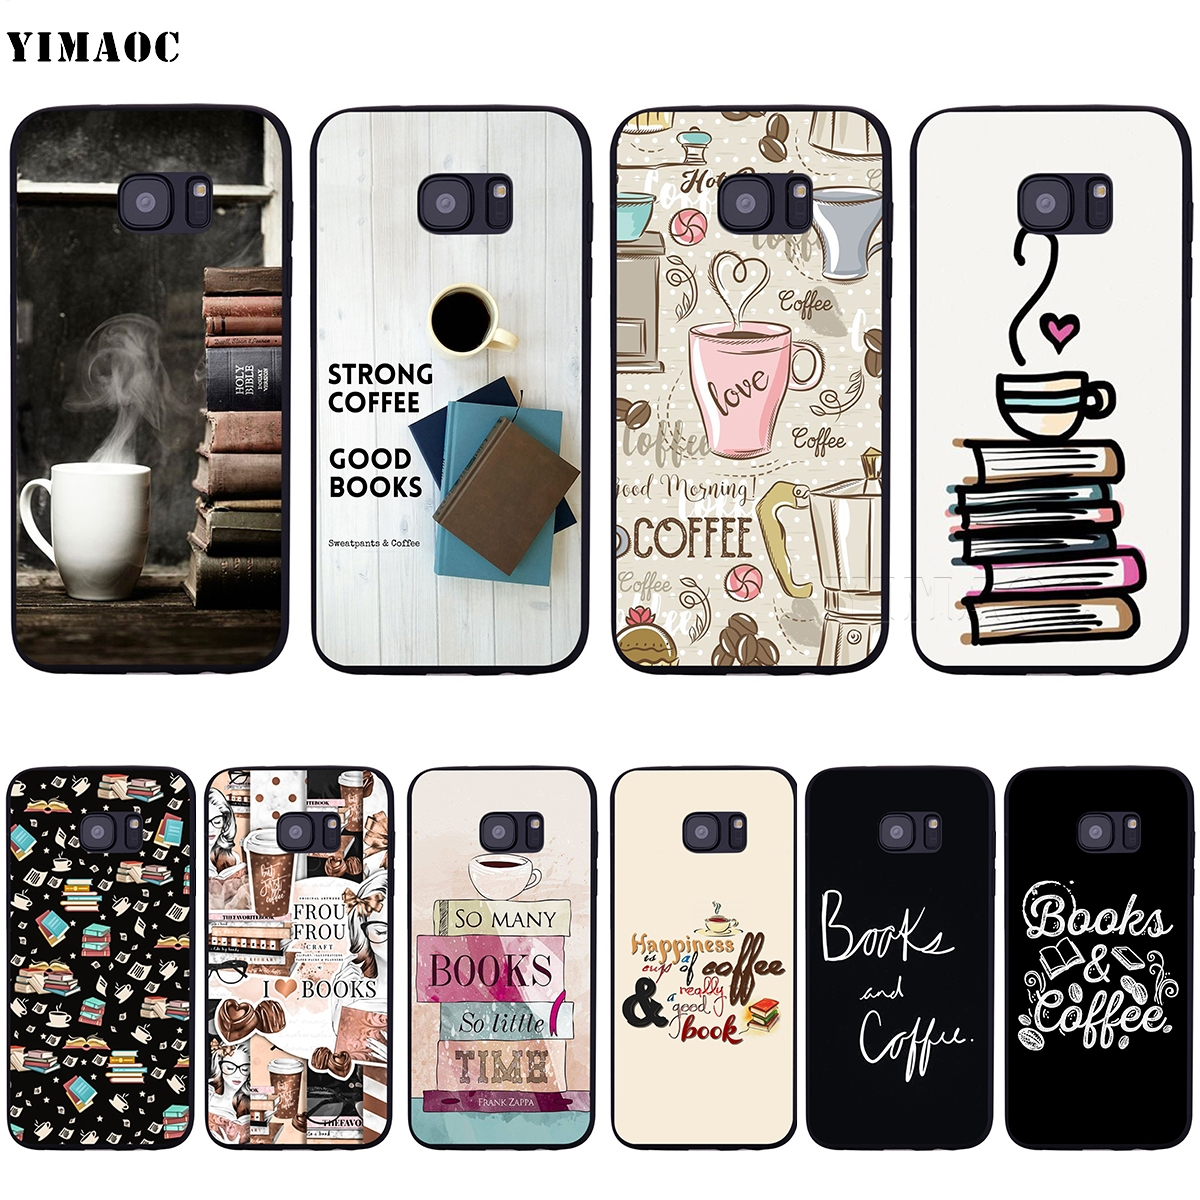 Phone Bags & Cases Frank Yimaoc Toy Story Pizza Planet Silicone Case For Xiaomi Redmi Note S2 4 4x 4a 5 5a 6 Pro Plus Fitted Cases